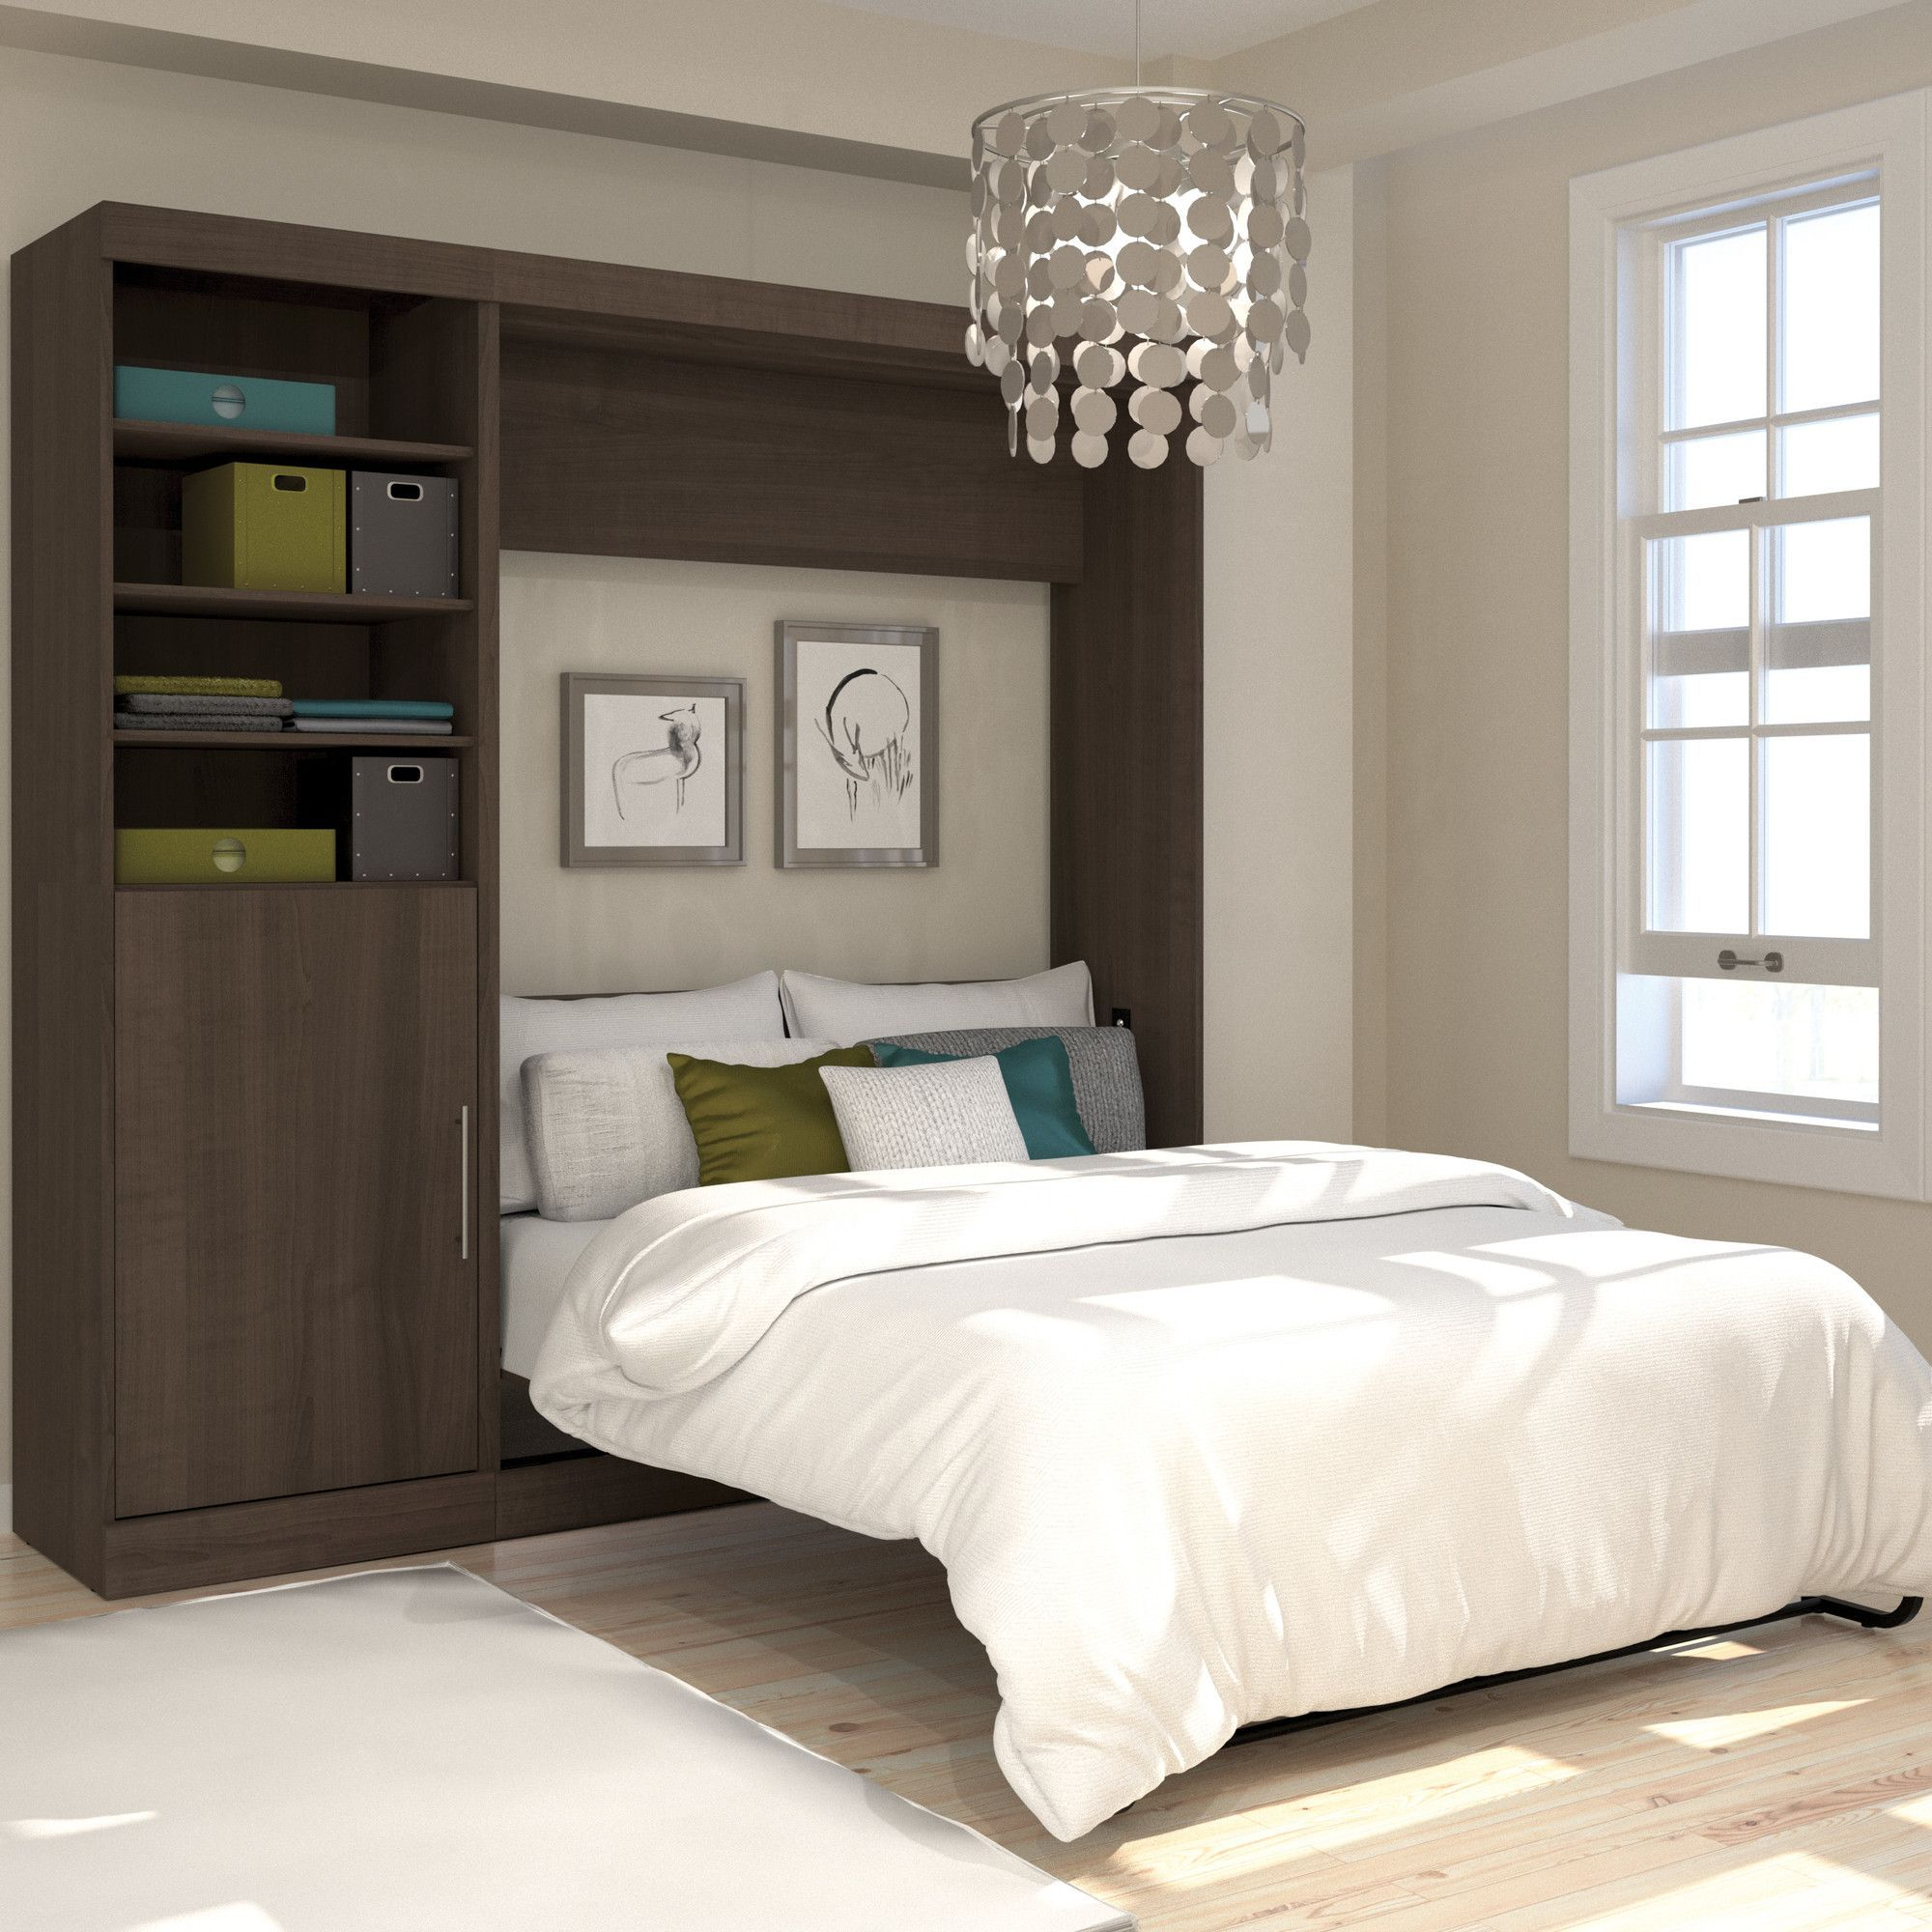 Nebula full storage wall bed products pinterest wall beds nebula full storage wall bed amipublicfo Image collections